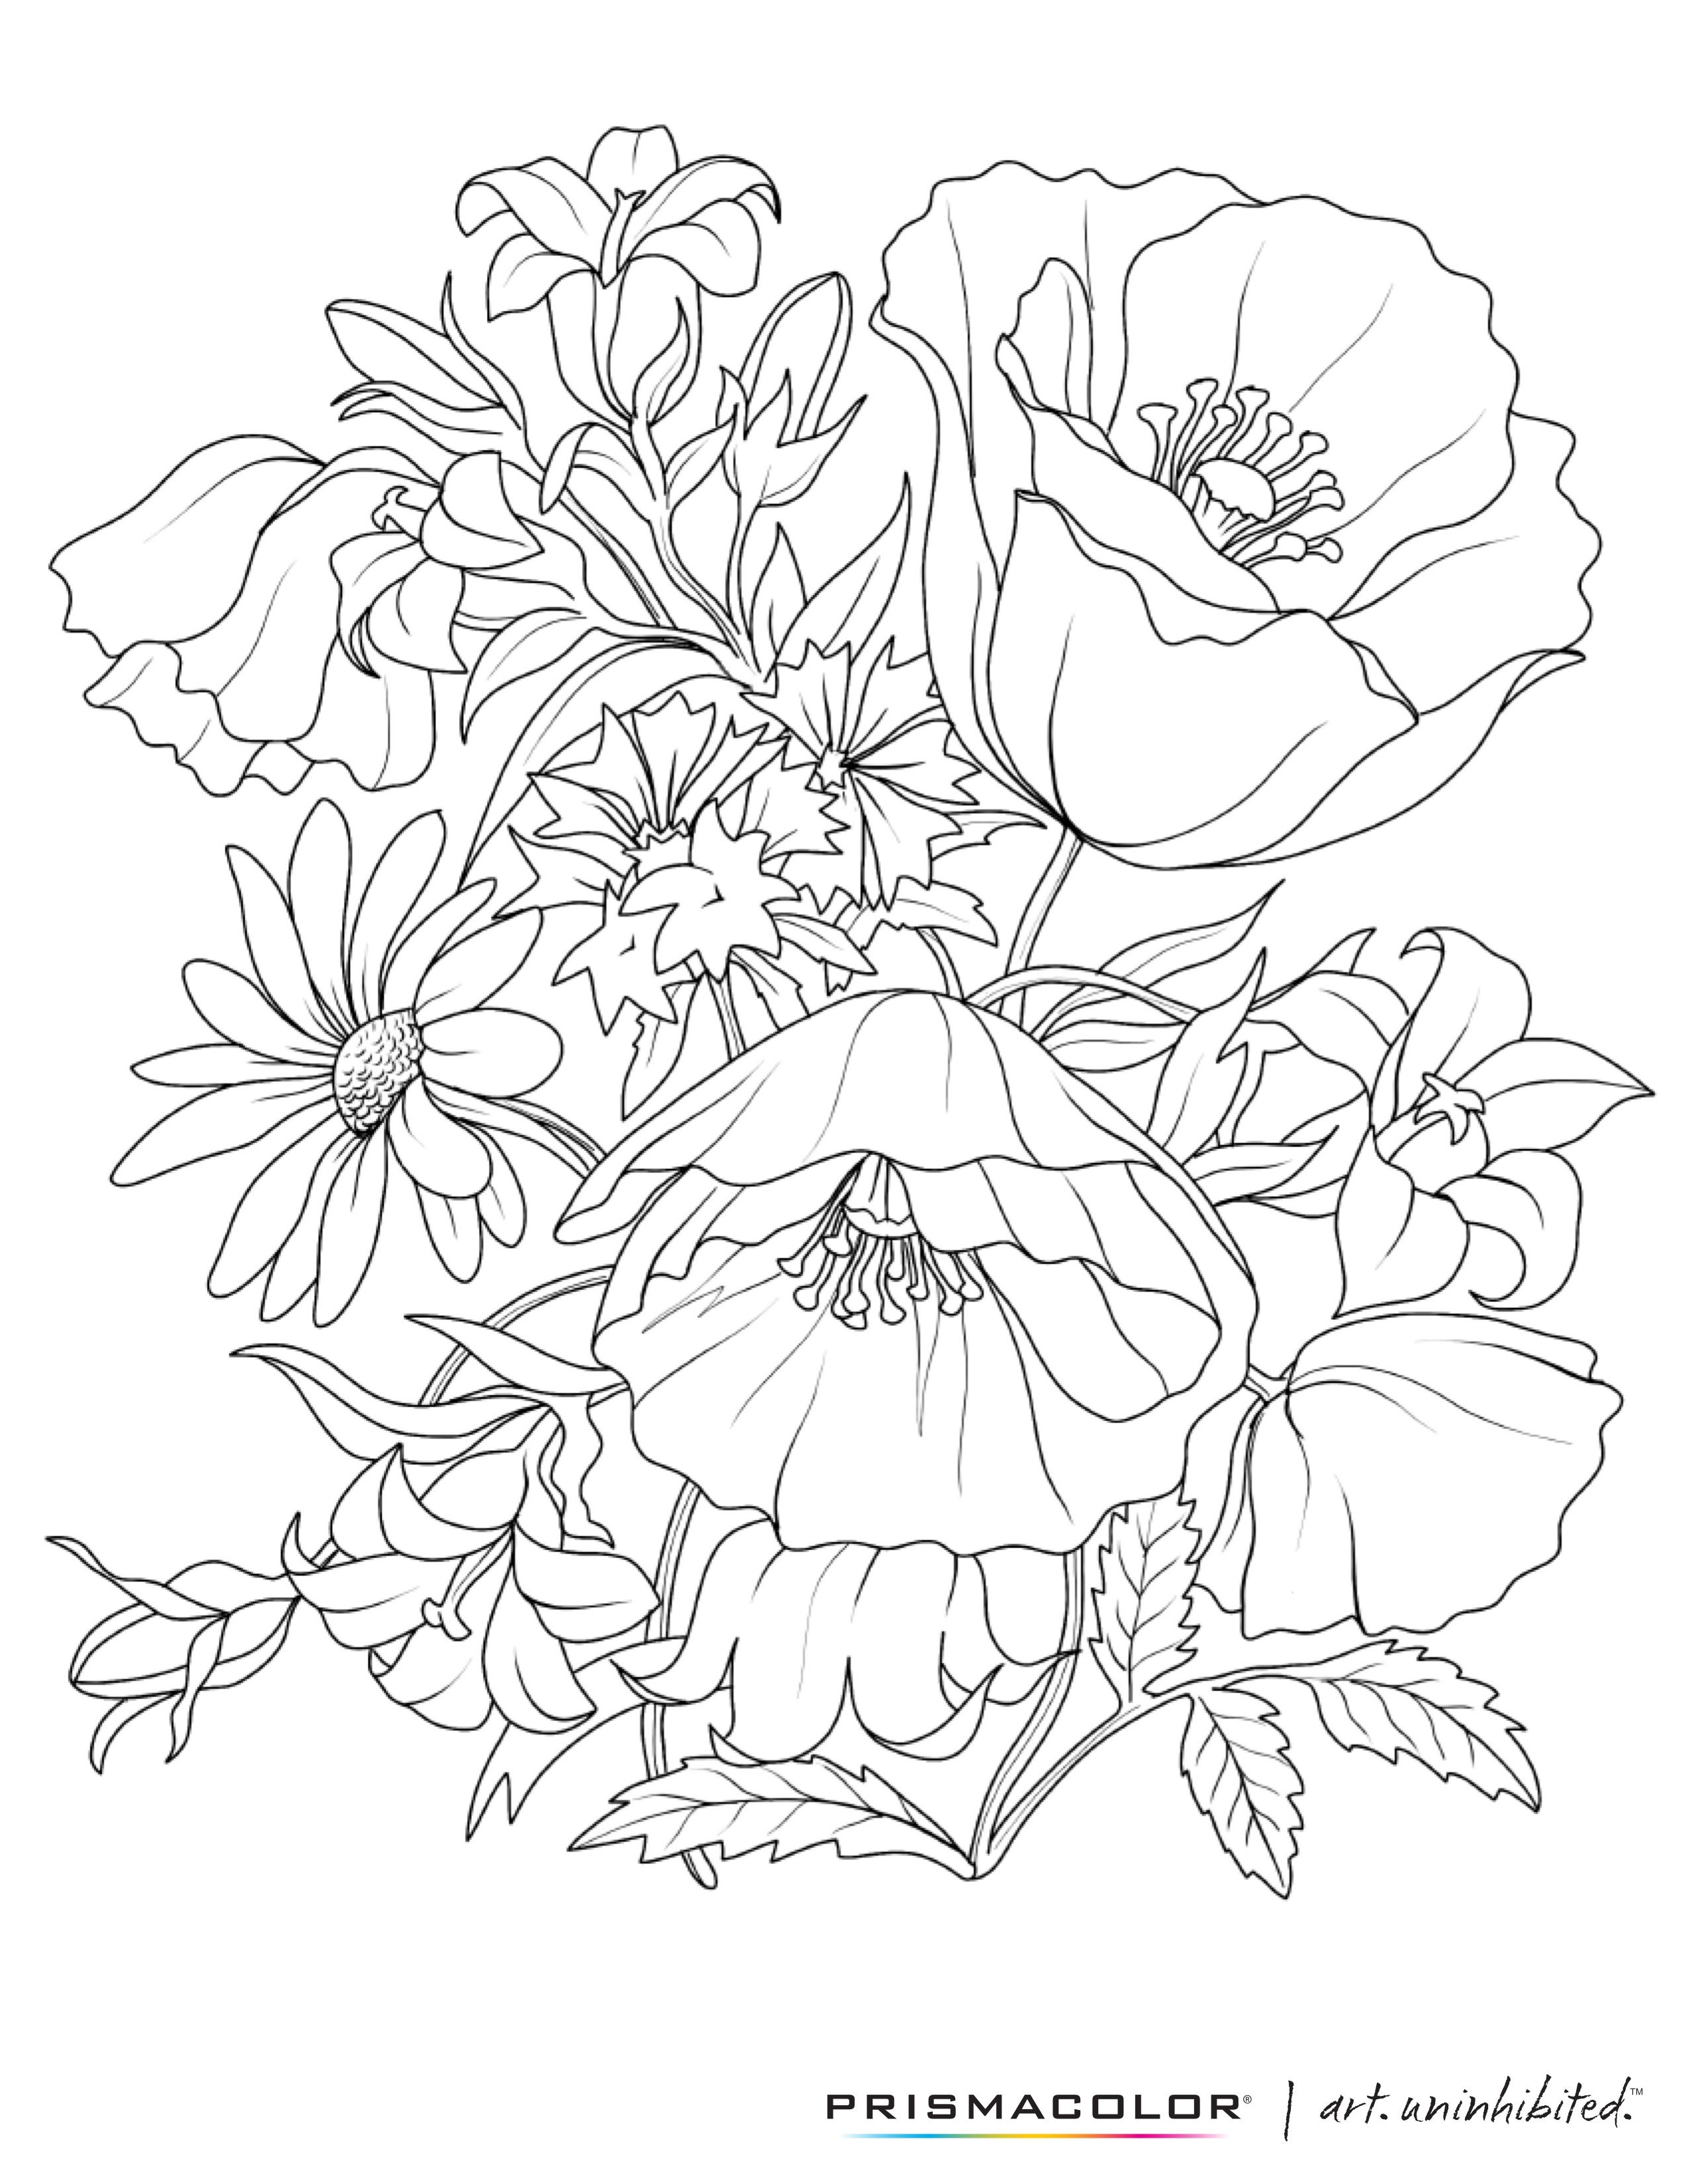 What a beautiful flower adult coloring page! Colouring